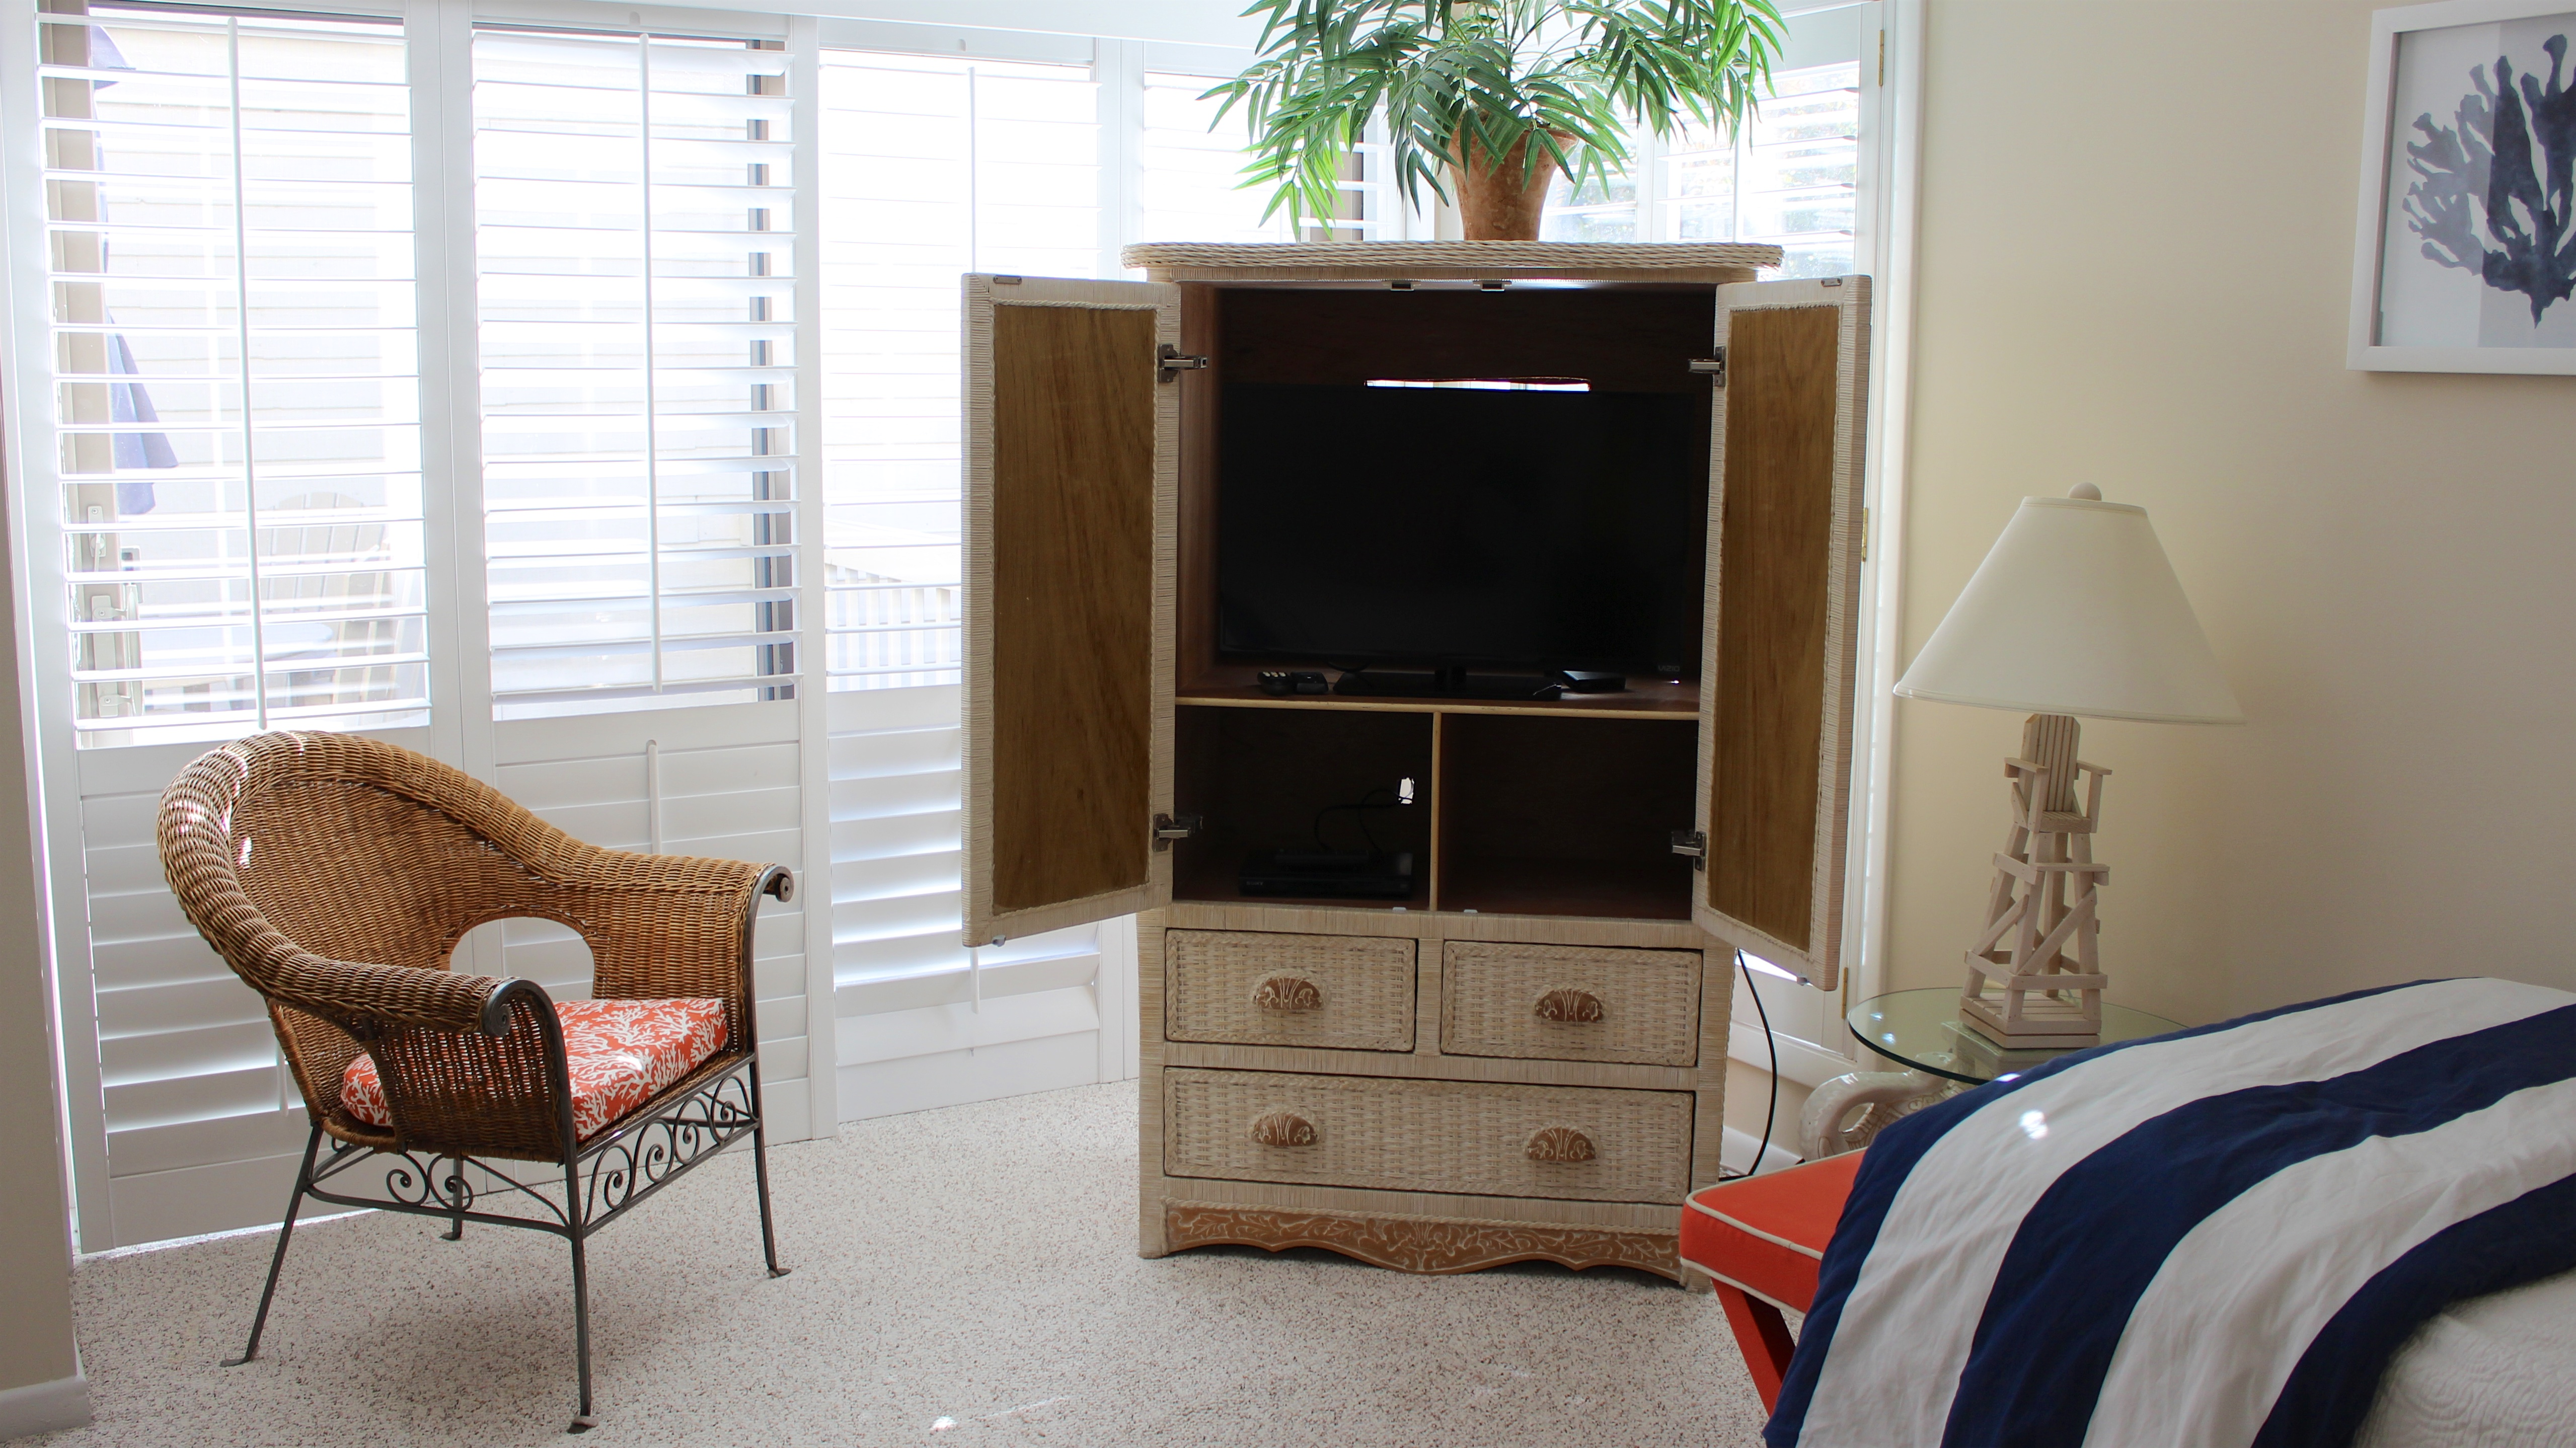 The armoire not only provides some storage for clothing, but also has an HDTV.